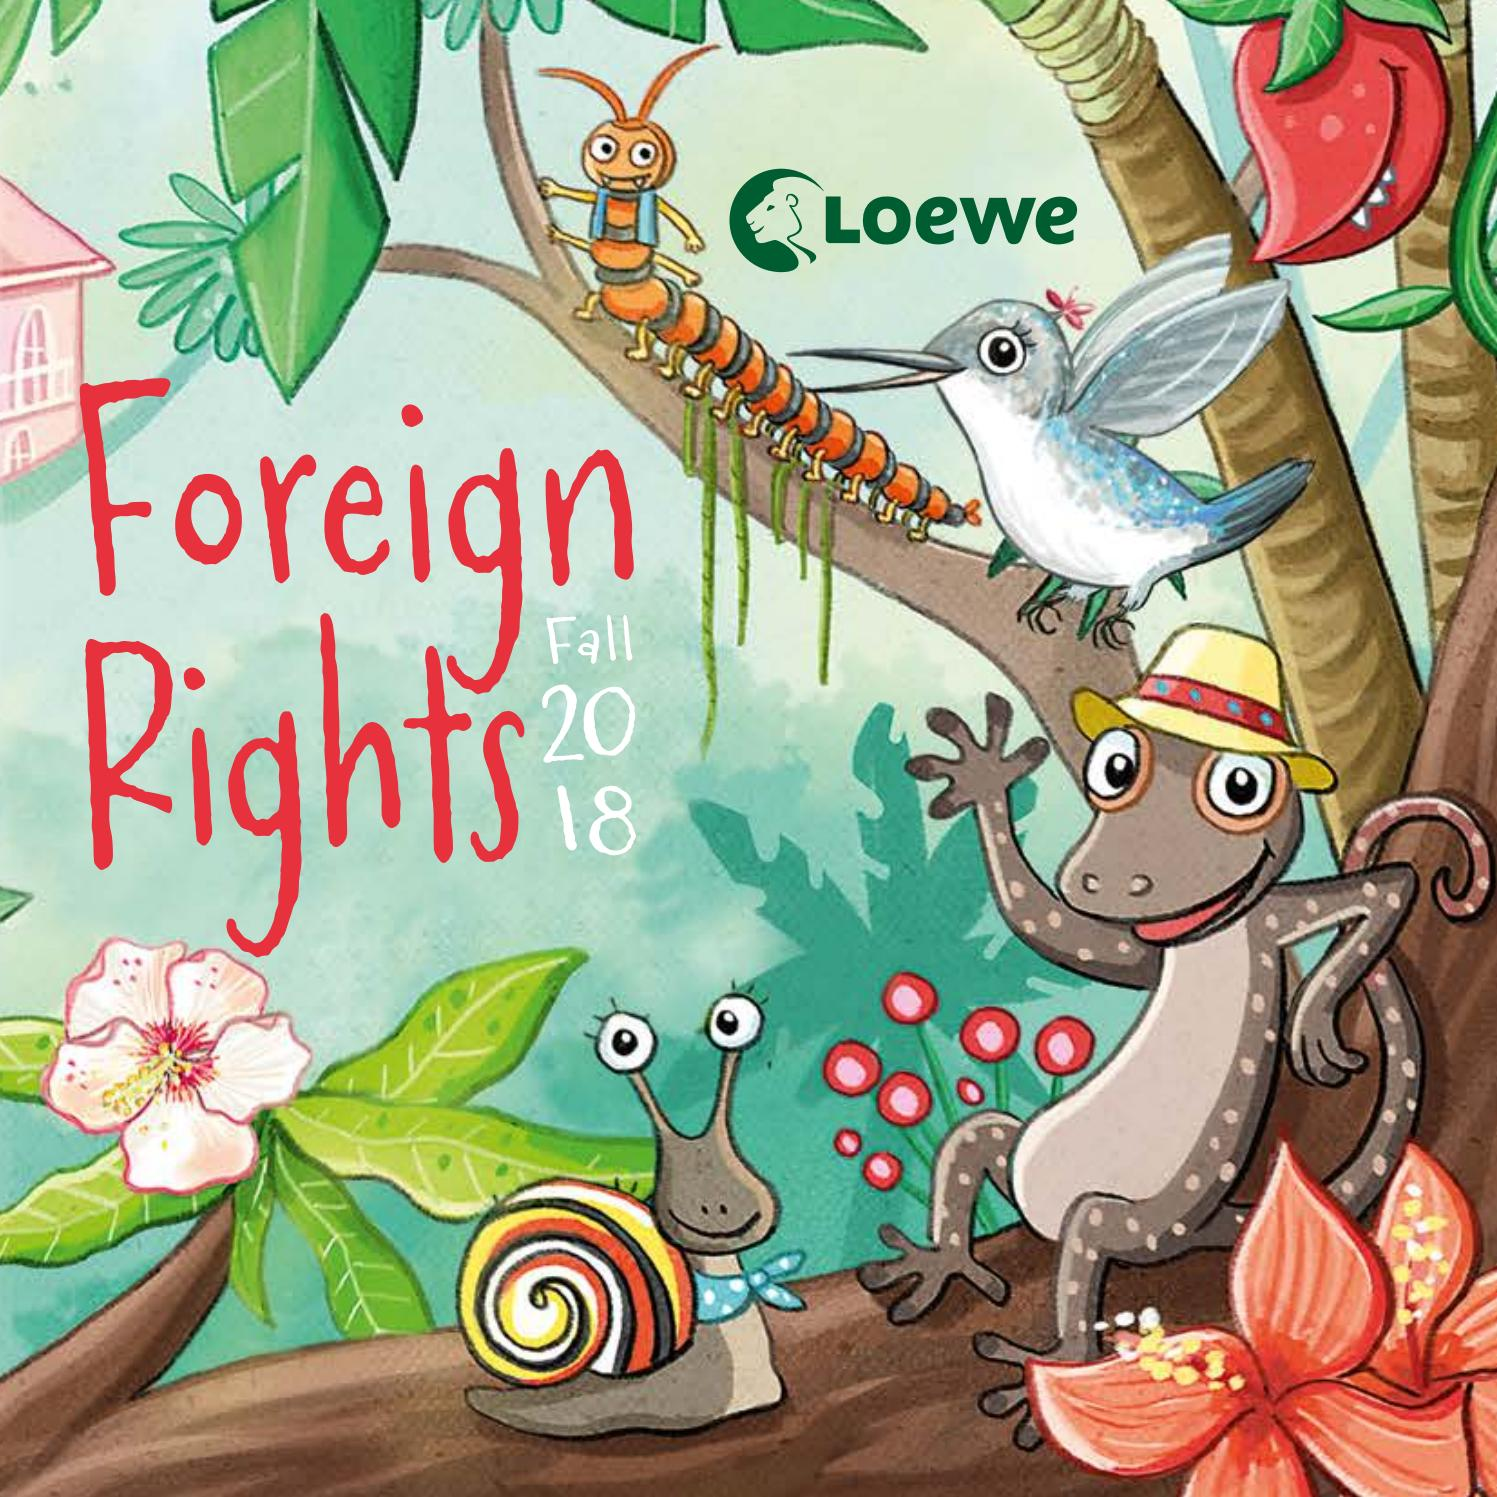 Foreign Rights Catalogue Fall 2018 by Loewe Verlag.